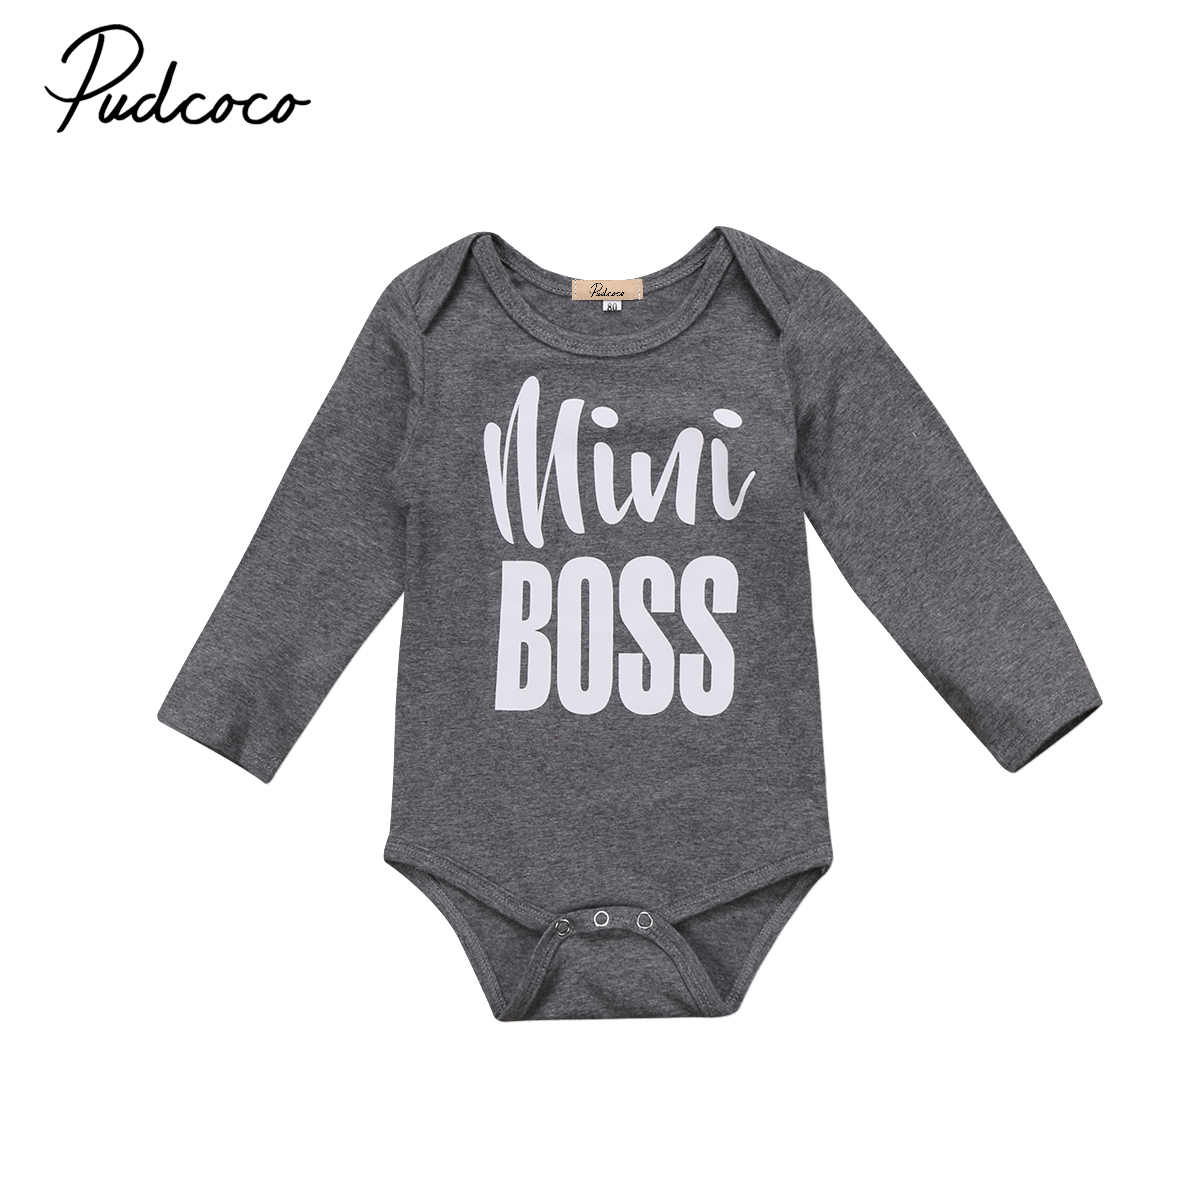 63e56ac8b5ff 2017 autumn new Cute Newborn Infant Baby Boys Girls Cotton Long Sleeve  Romper letter Jumpsuit gray